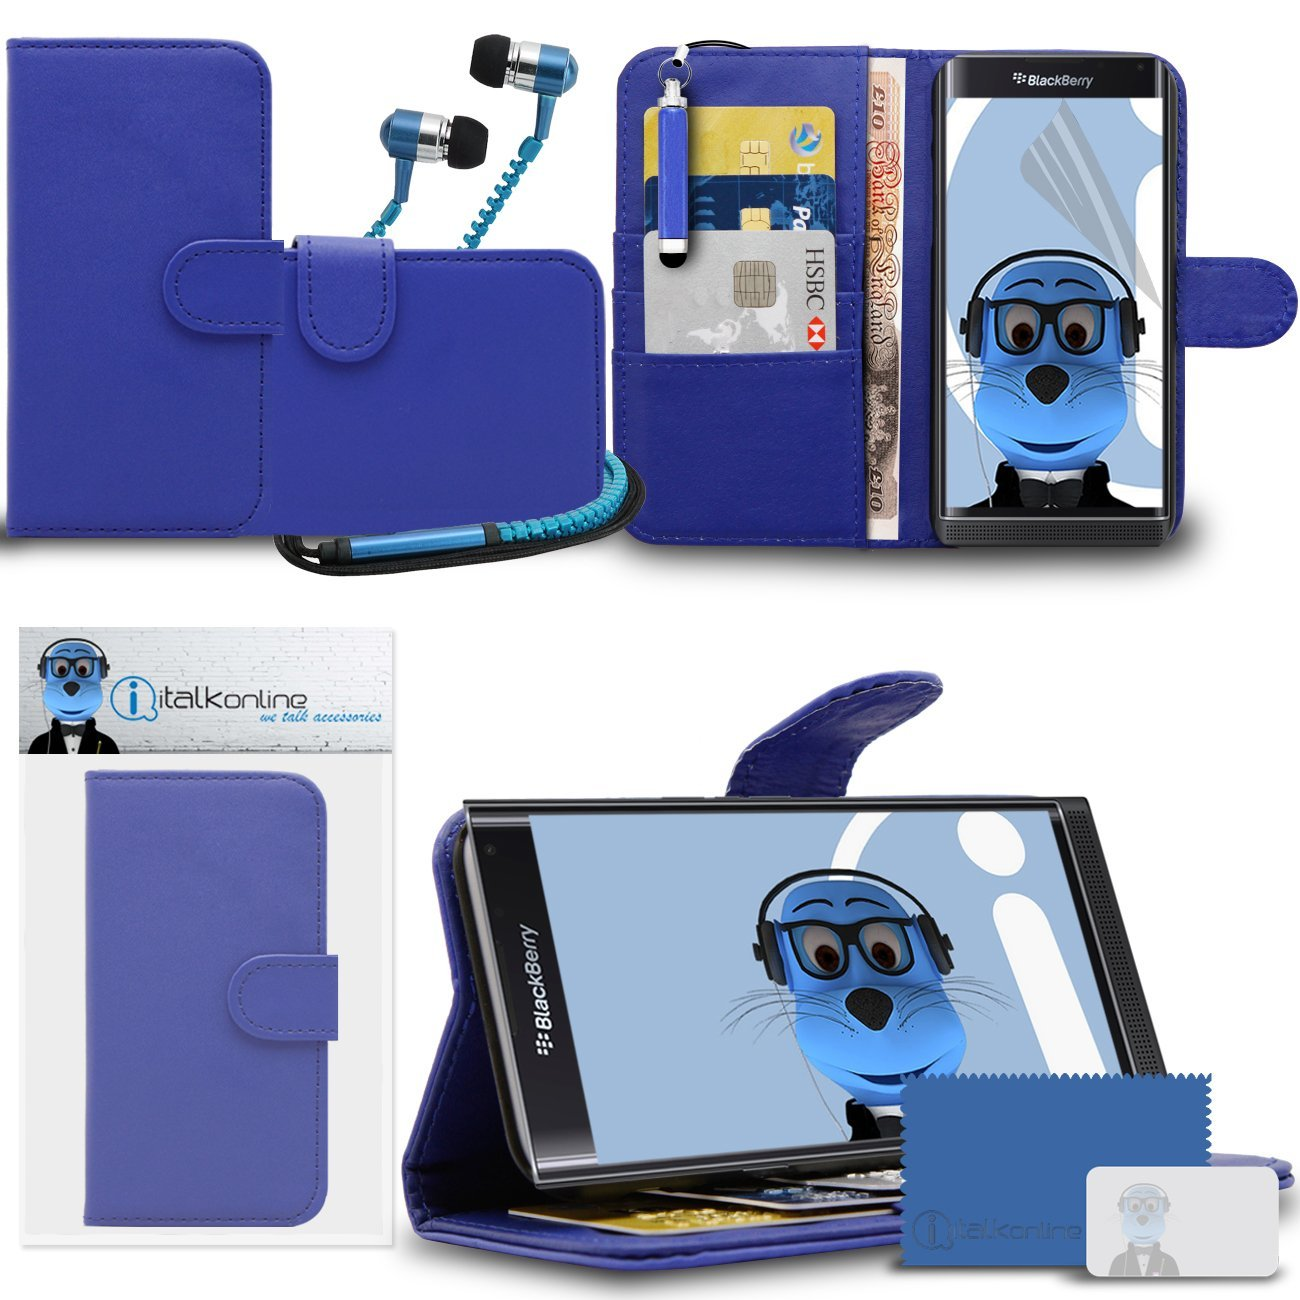 BlackBerry Priv Blue PU Leather Wallet Case with Credit Card Holder and Viewing Stand - LCD Screen Protector - Retractable Mini Stylus Pen - 3.5mm ZIPPER Stereo Hands Free HeadPhones with Mic